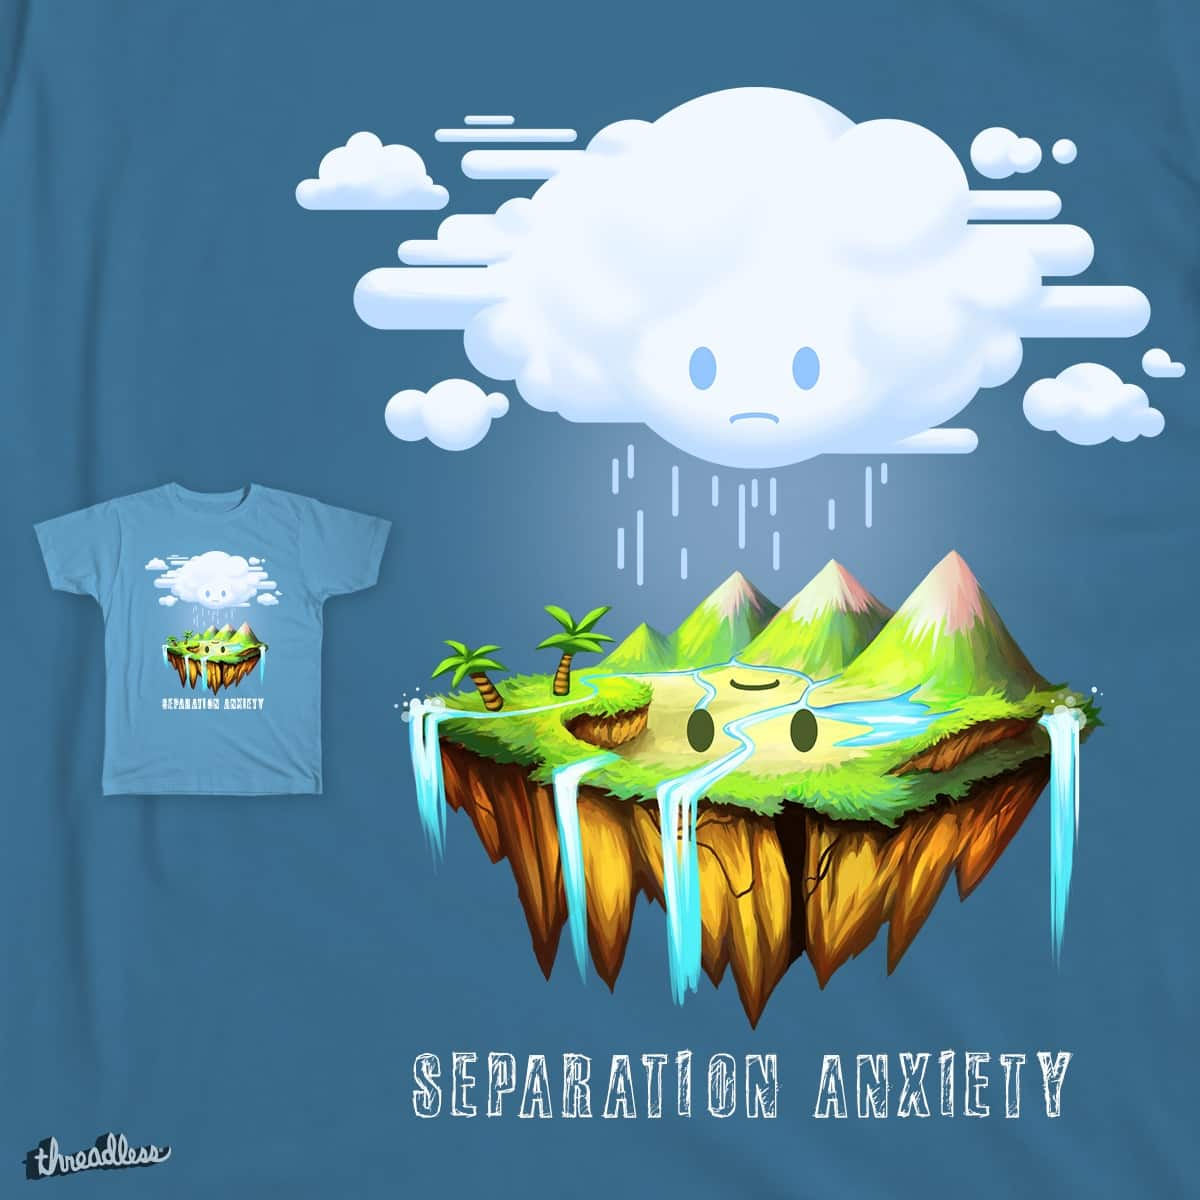 Separation Anxiety by cjkreative on Threadless